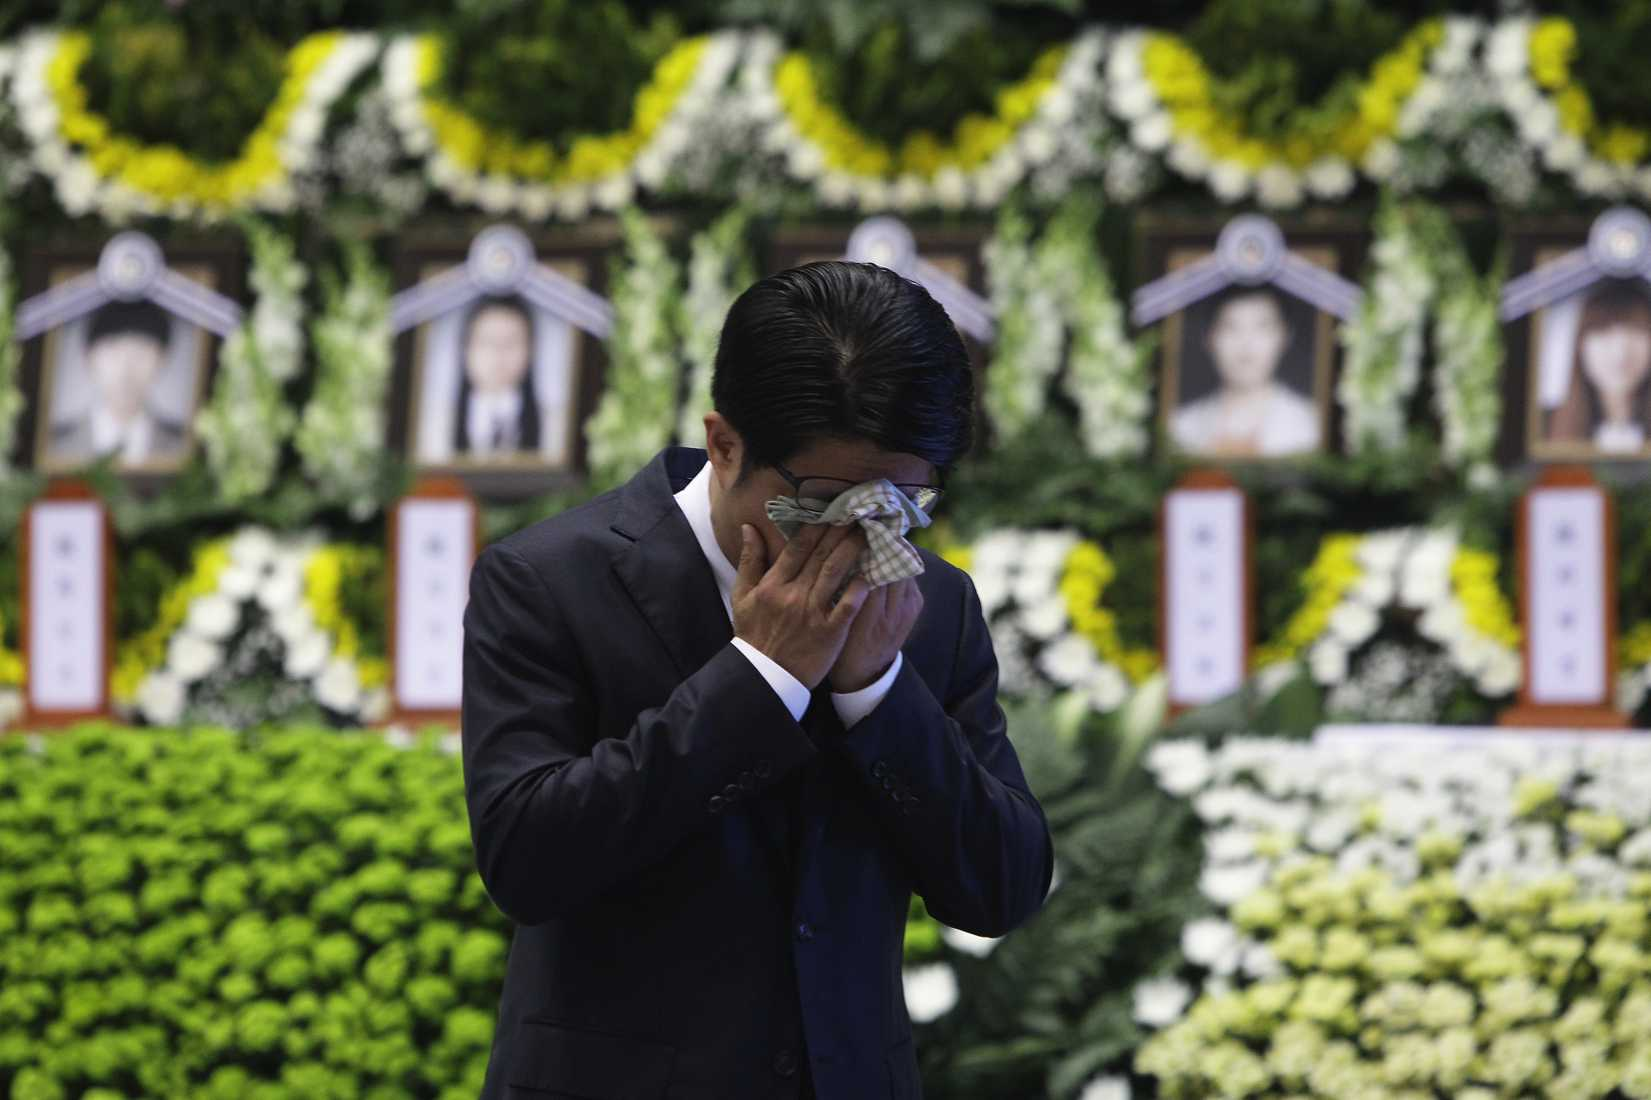 A man weeps after tribute at a group memorial altar for victims of sunken passengers ship at the Ansan Olympic Memorial Hall on April 23, 2014 in Ansan, South Korea.